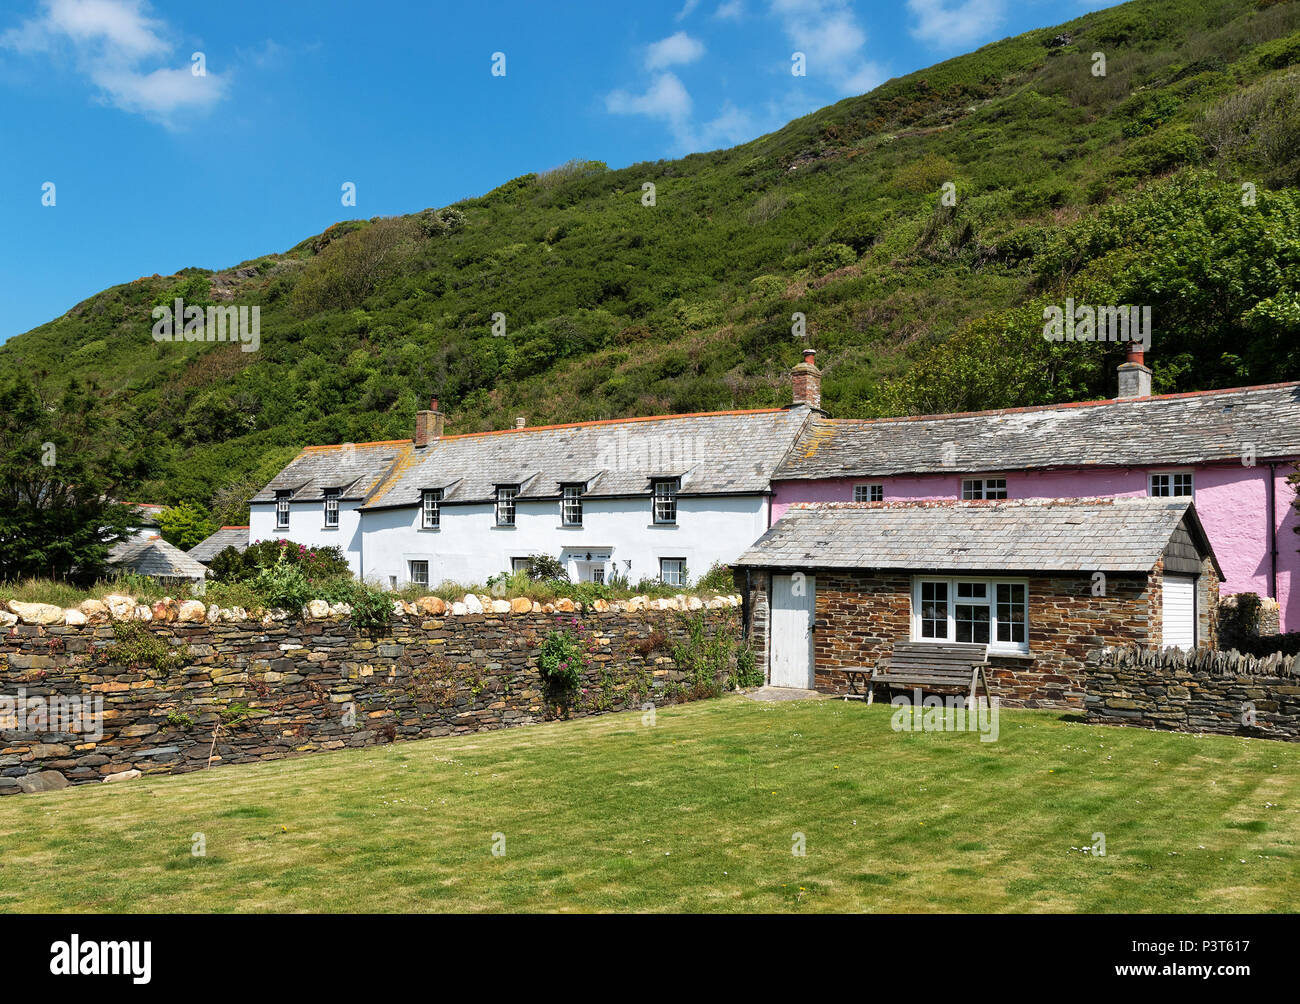 traditional cottages in the village boscastle, cornwall, england, britain, uk. - Stock Image